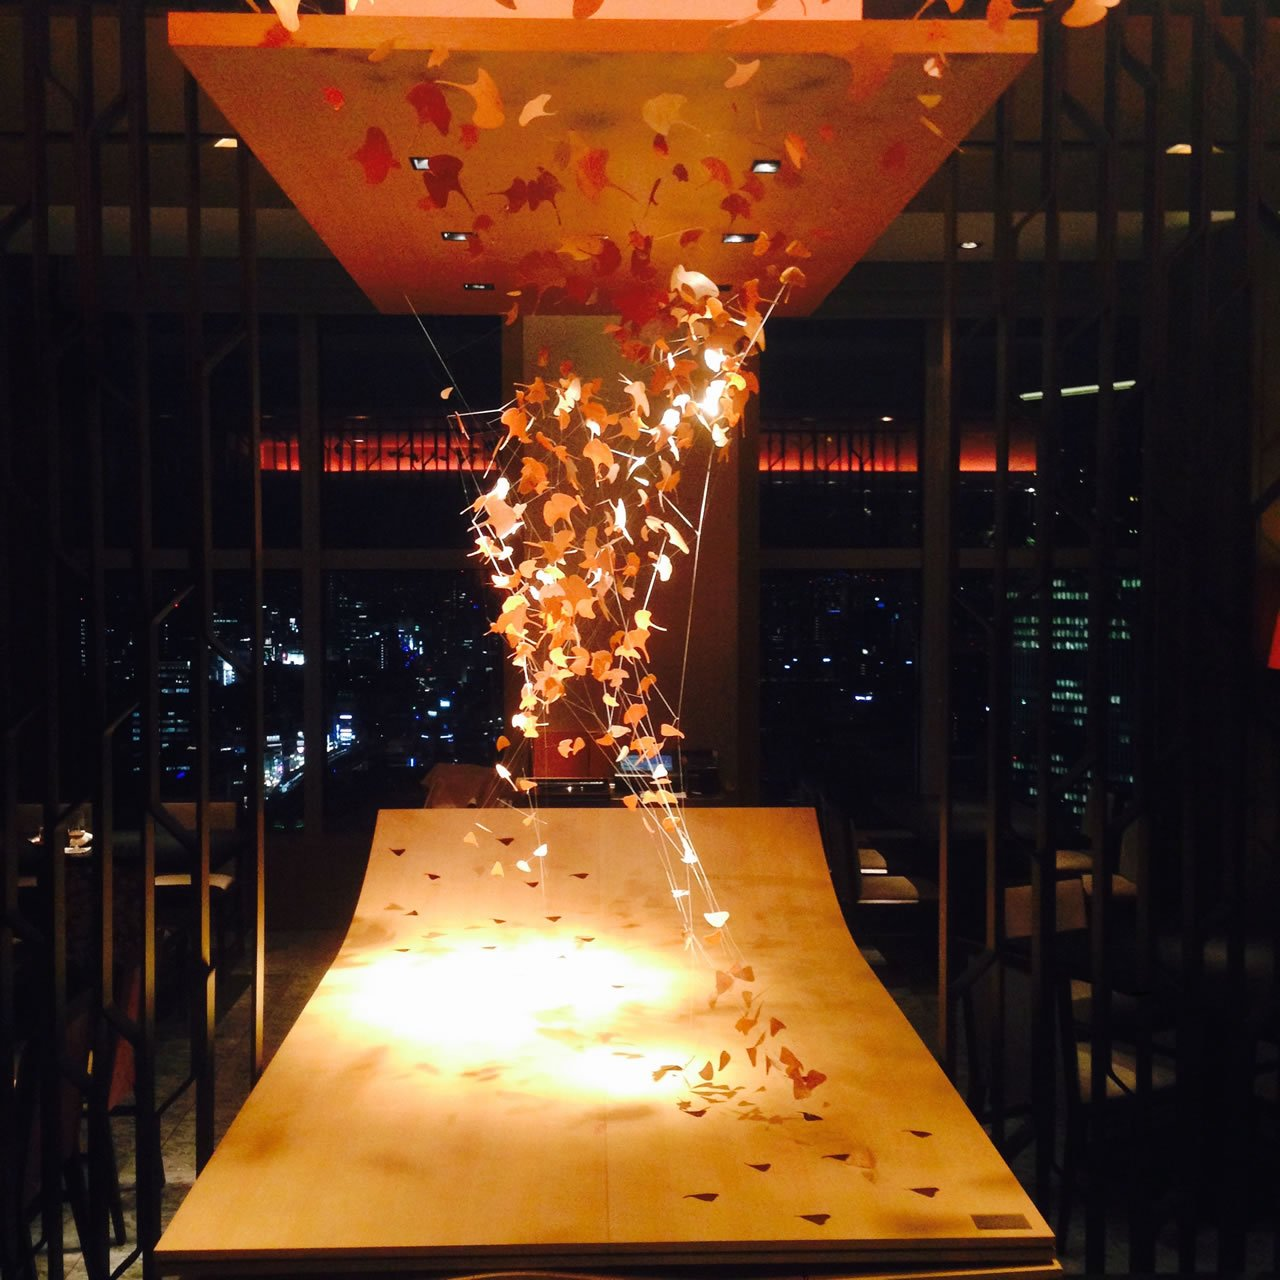 Where arts means Japanese cooking- Nadaman